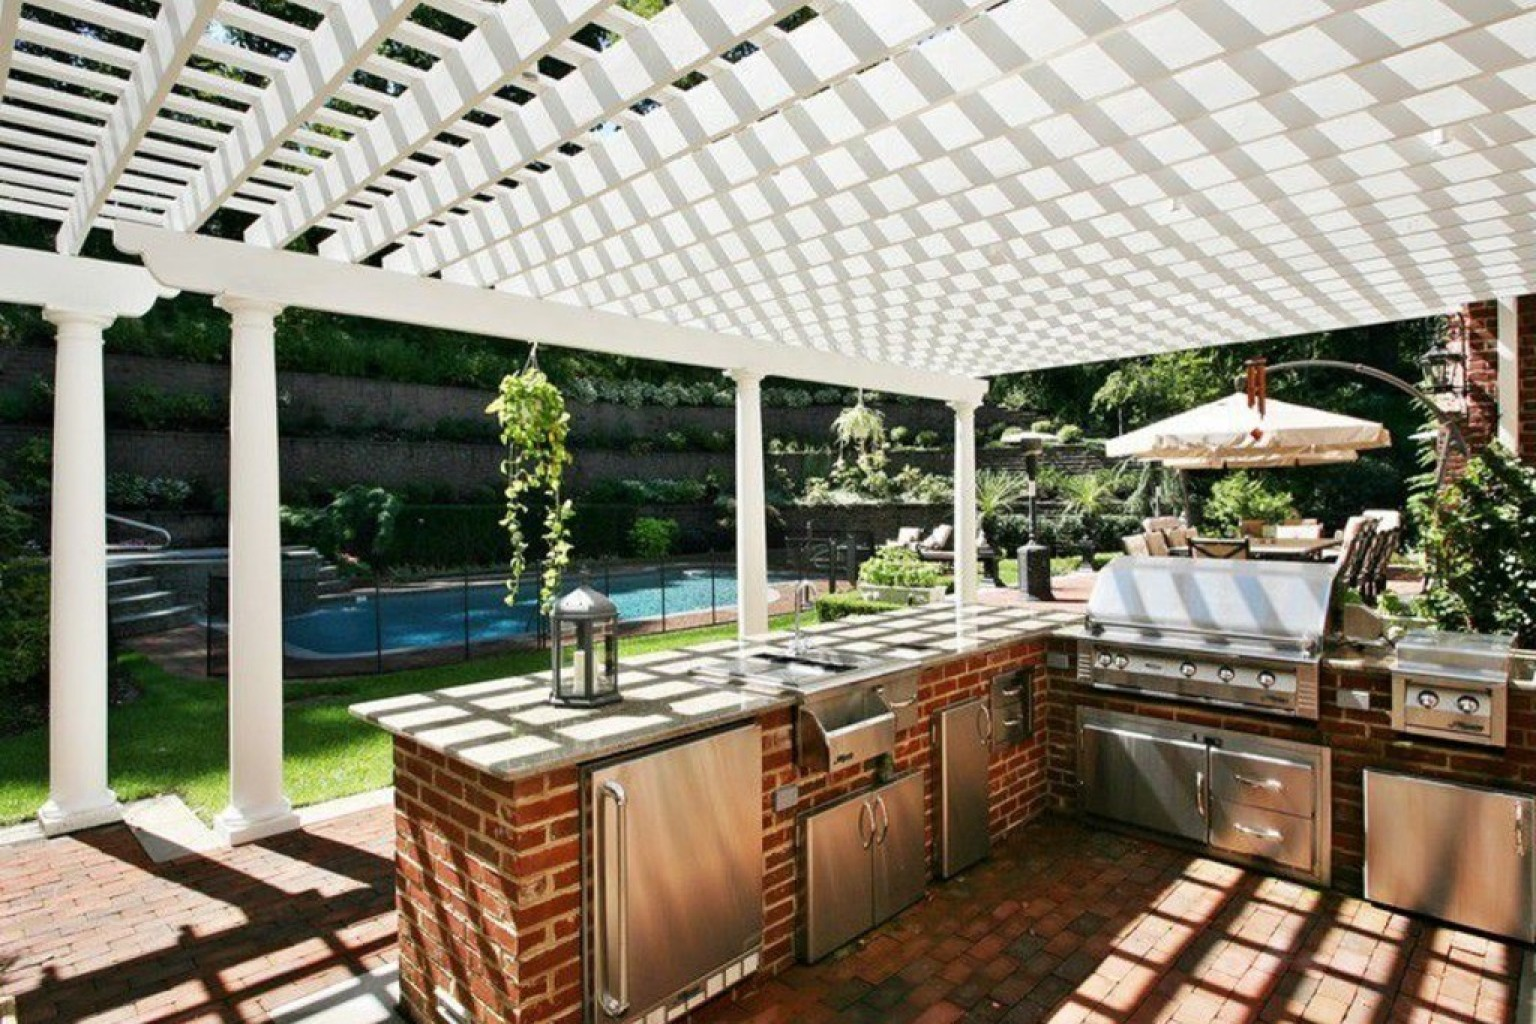 outdoor kitchens ideas uk. 14 incredible outdoor kitchens that go way beyond grills (photos) | huffpost ideas uk